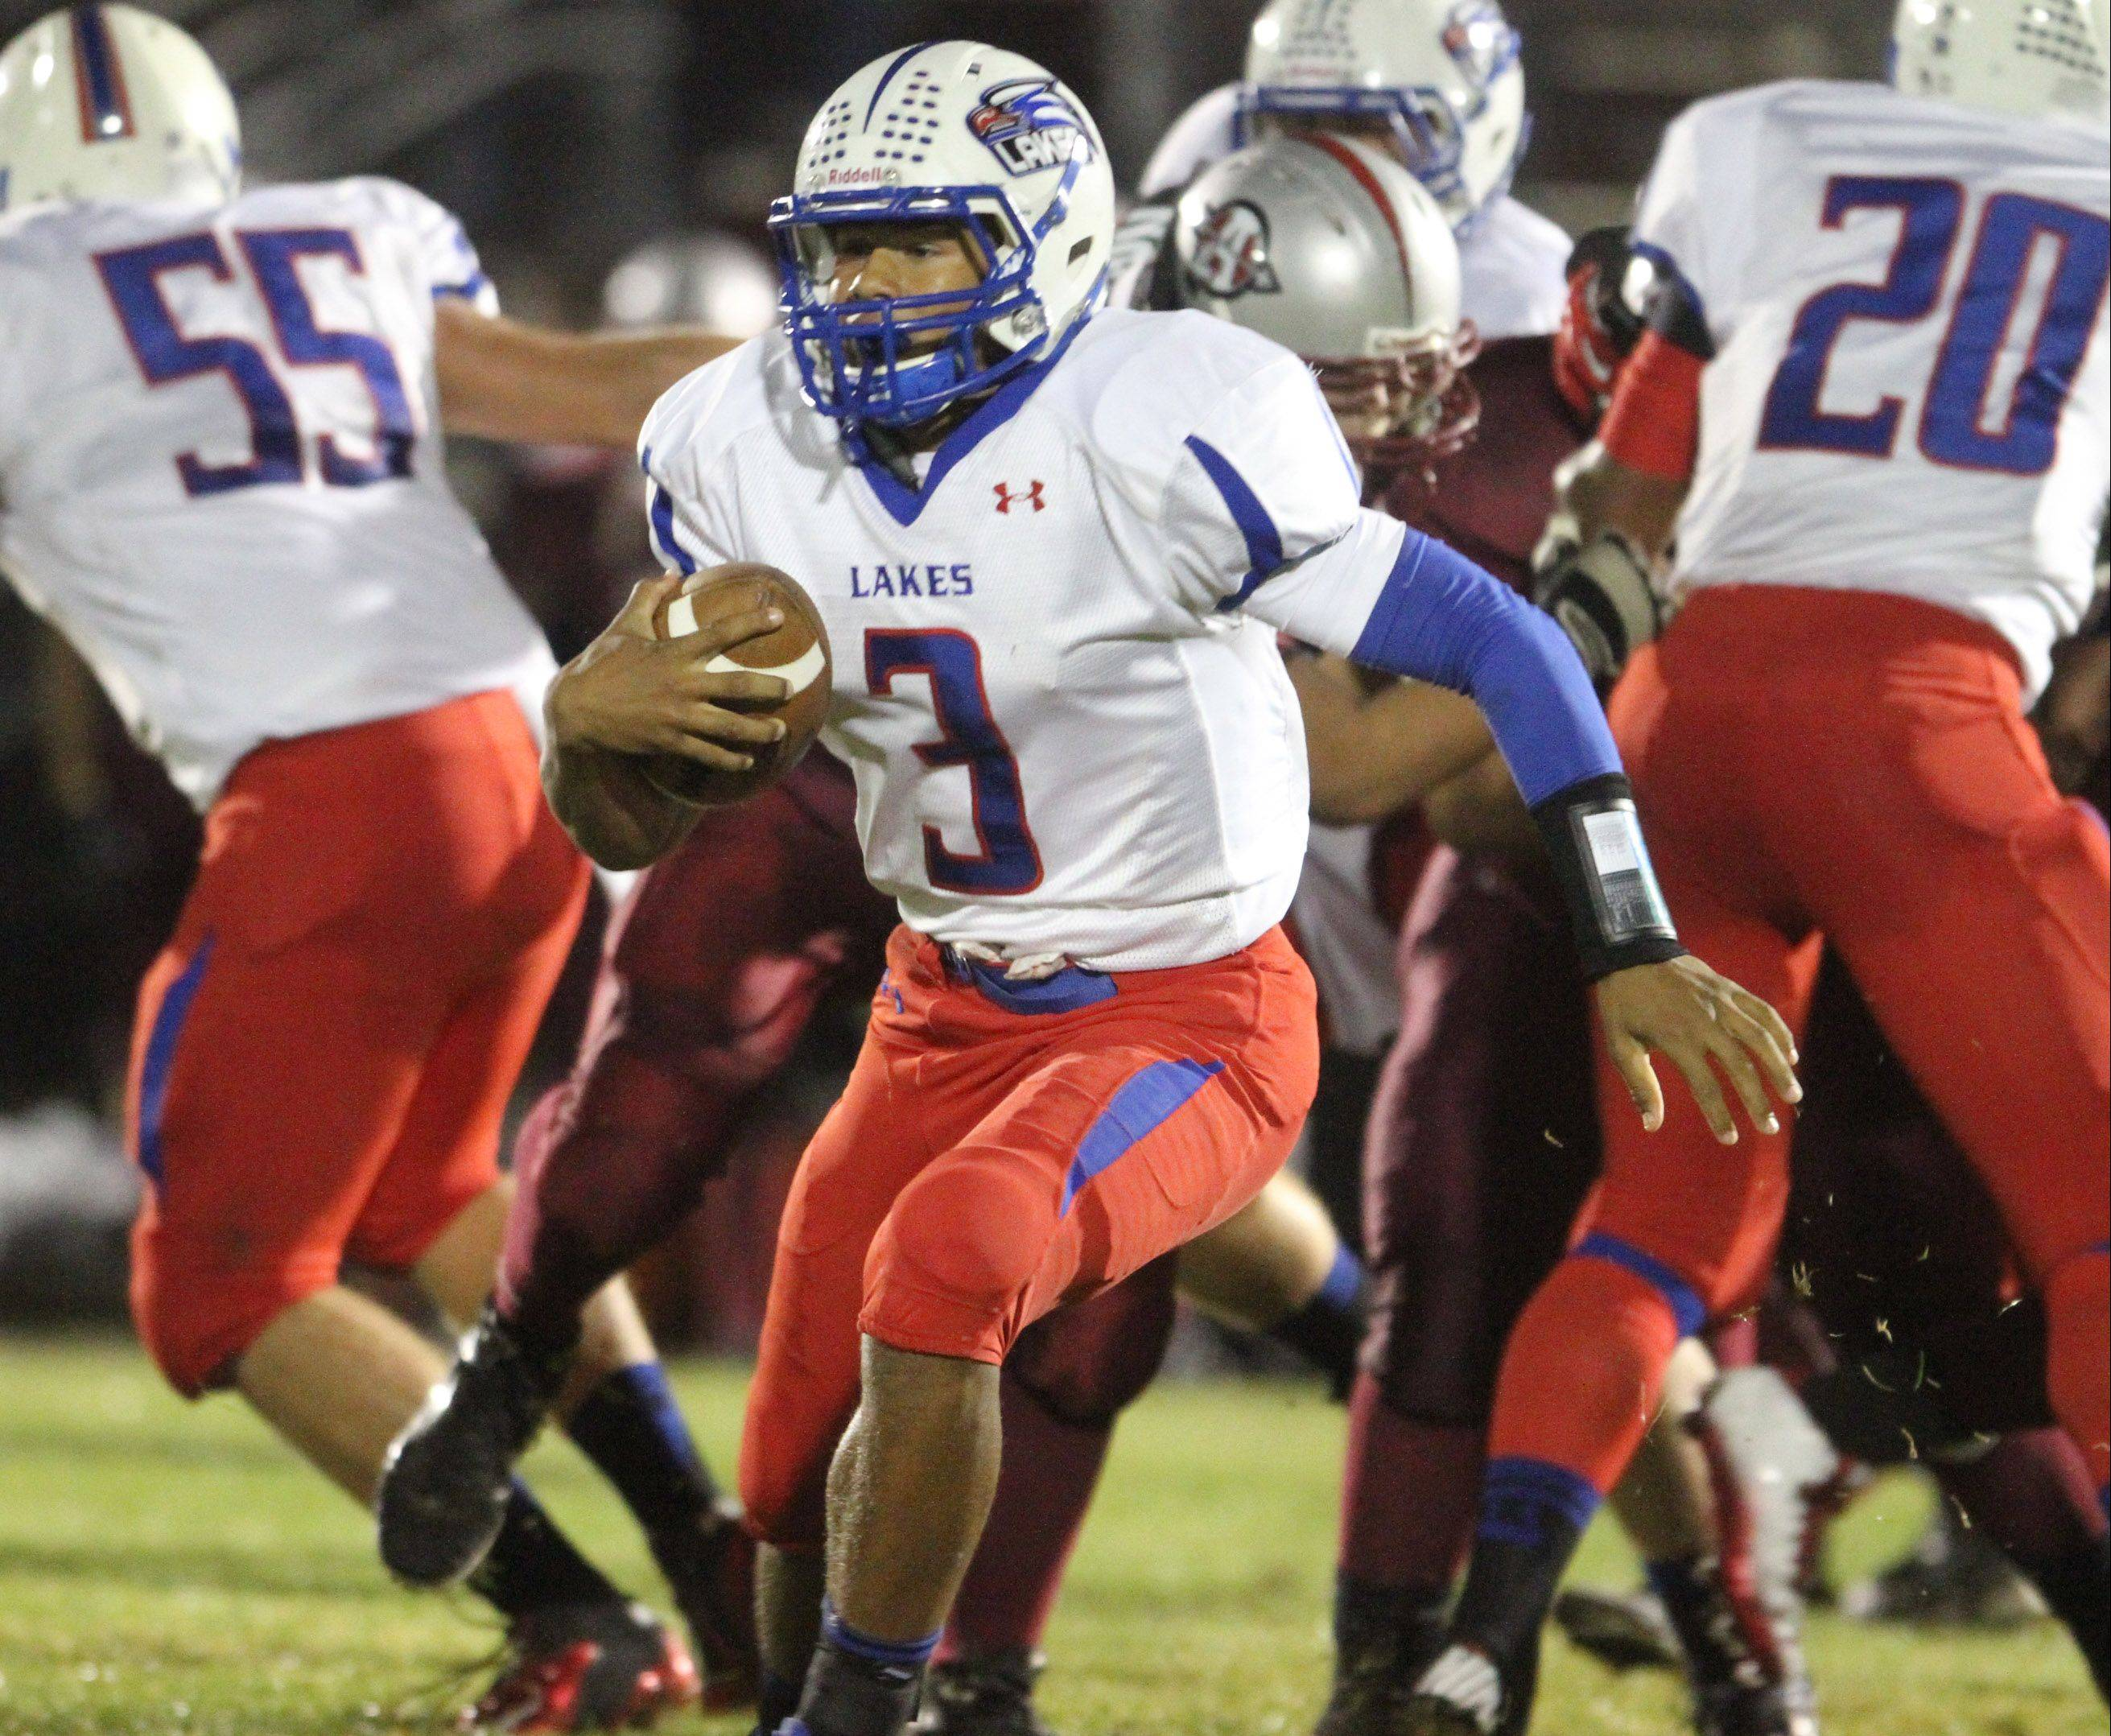 Lakes quarterback T.J. Edwards advances the ball on a keeper at Antioch on Friday.